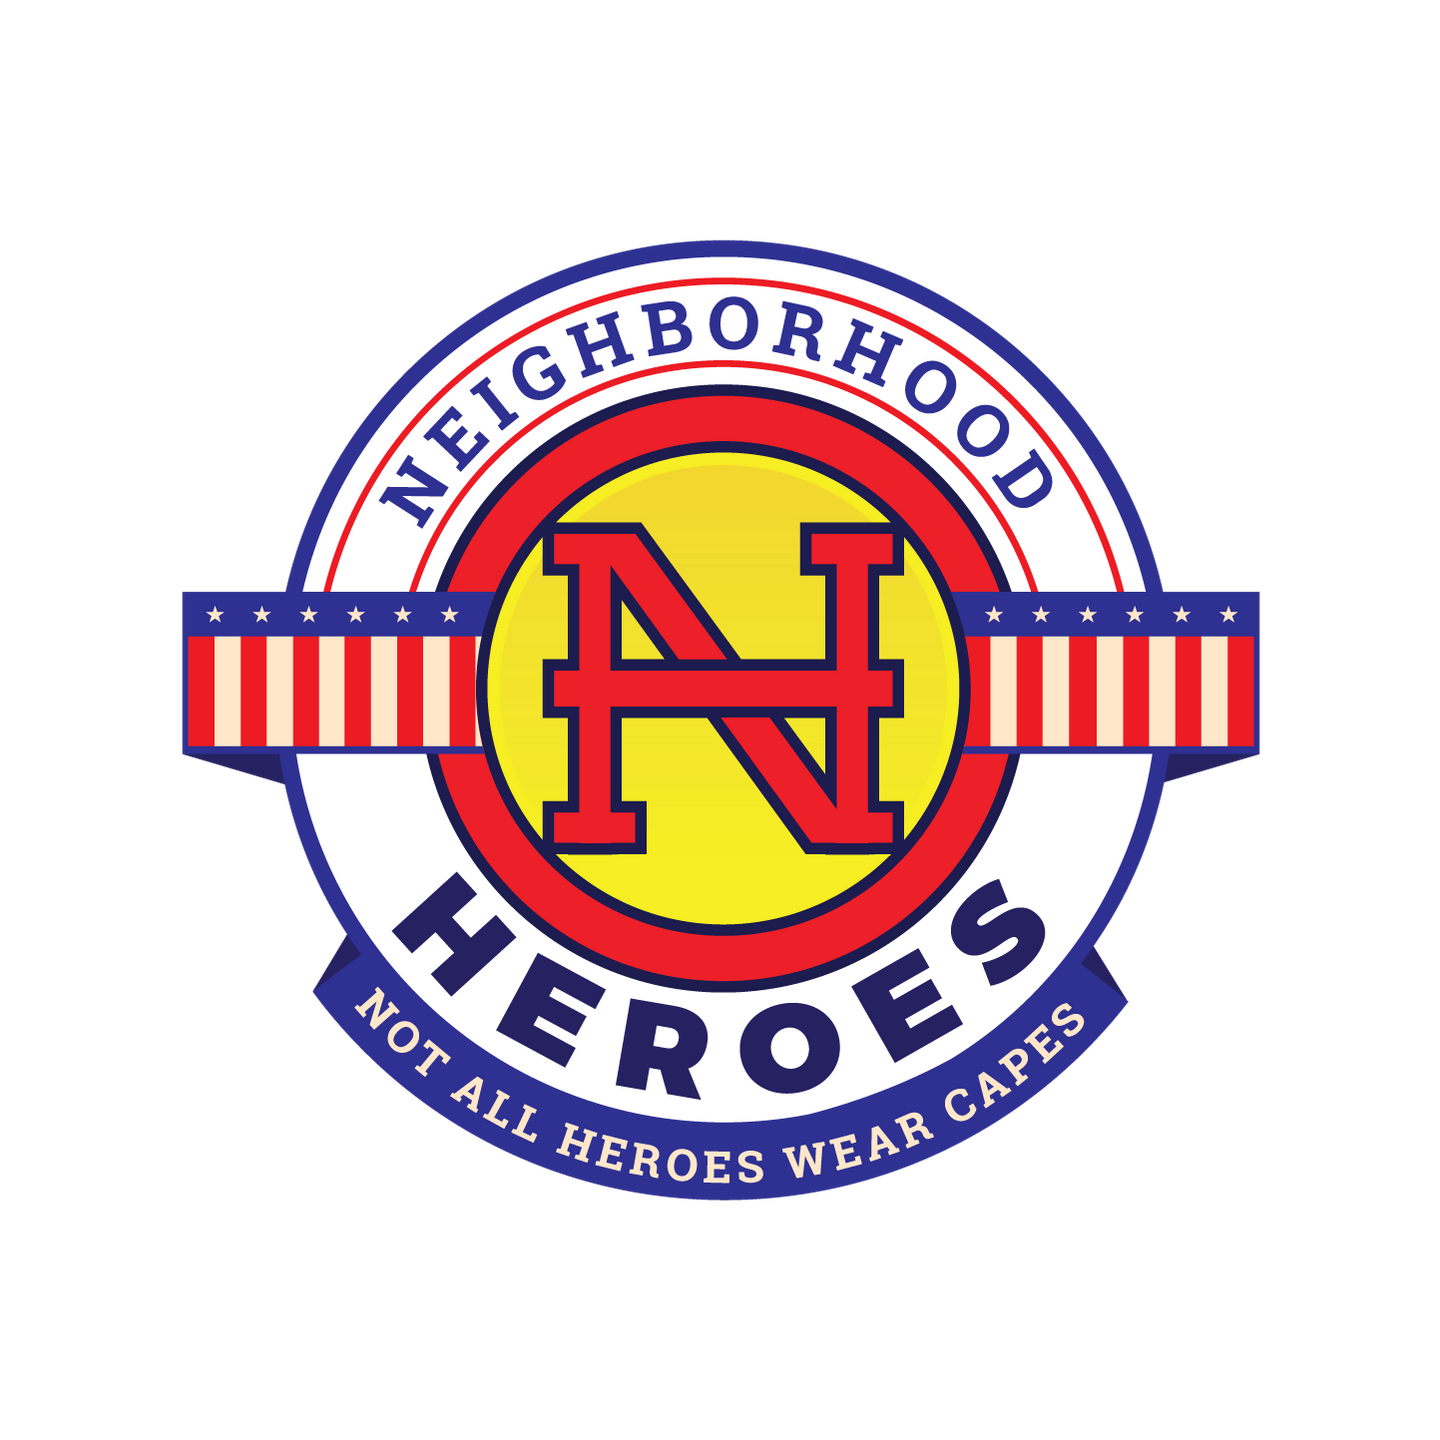 Sponsorship Support - Neighborhood Heroes (Feeding others, 11/17/19)